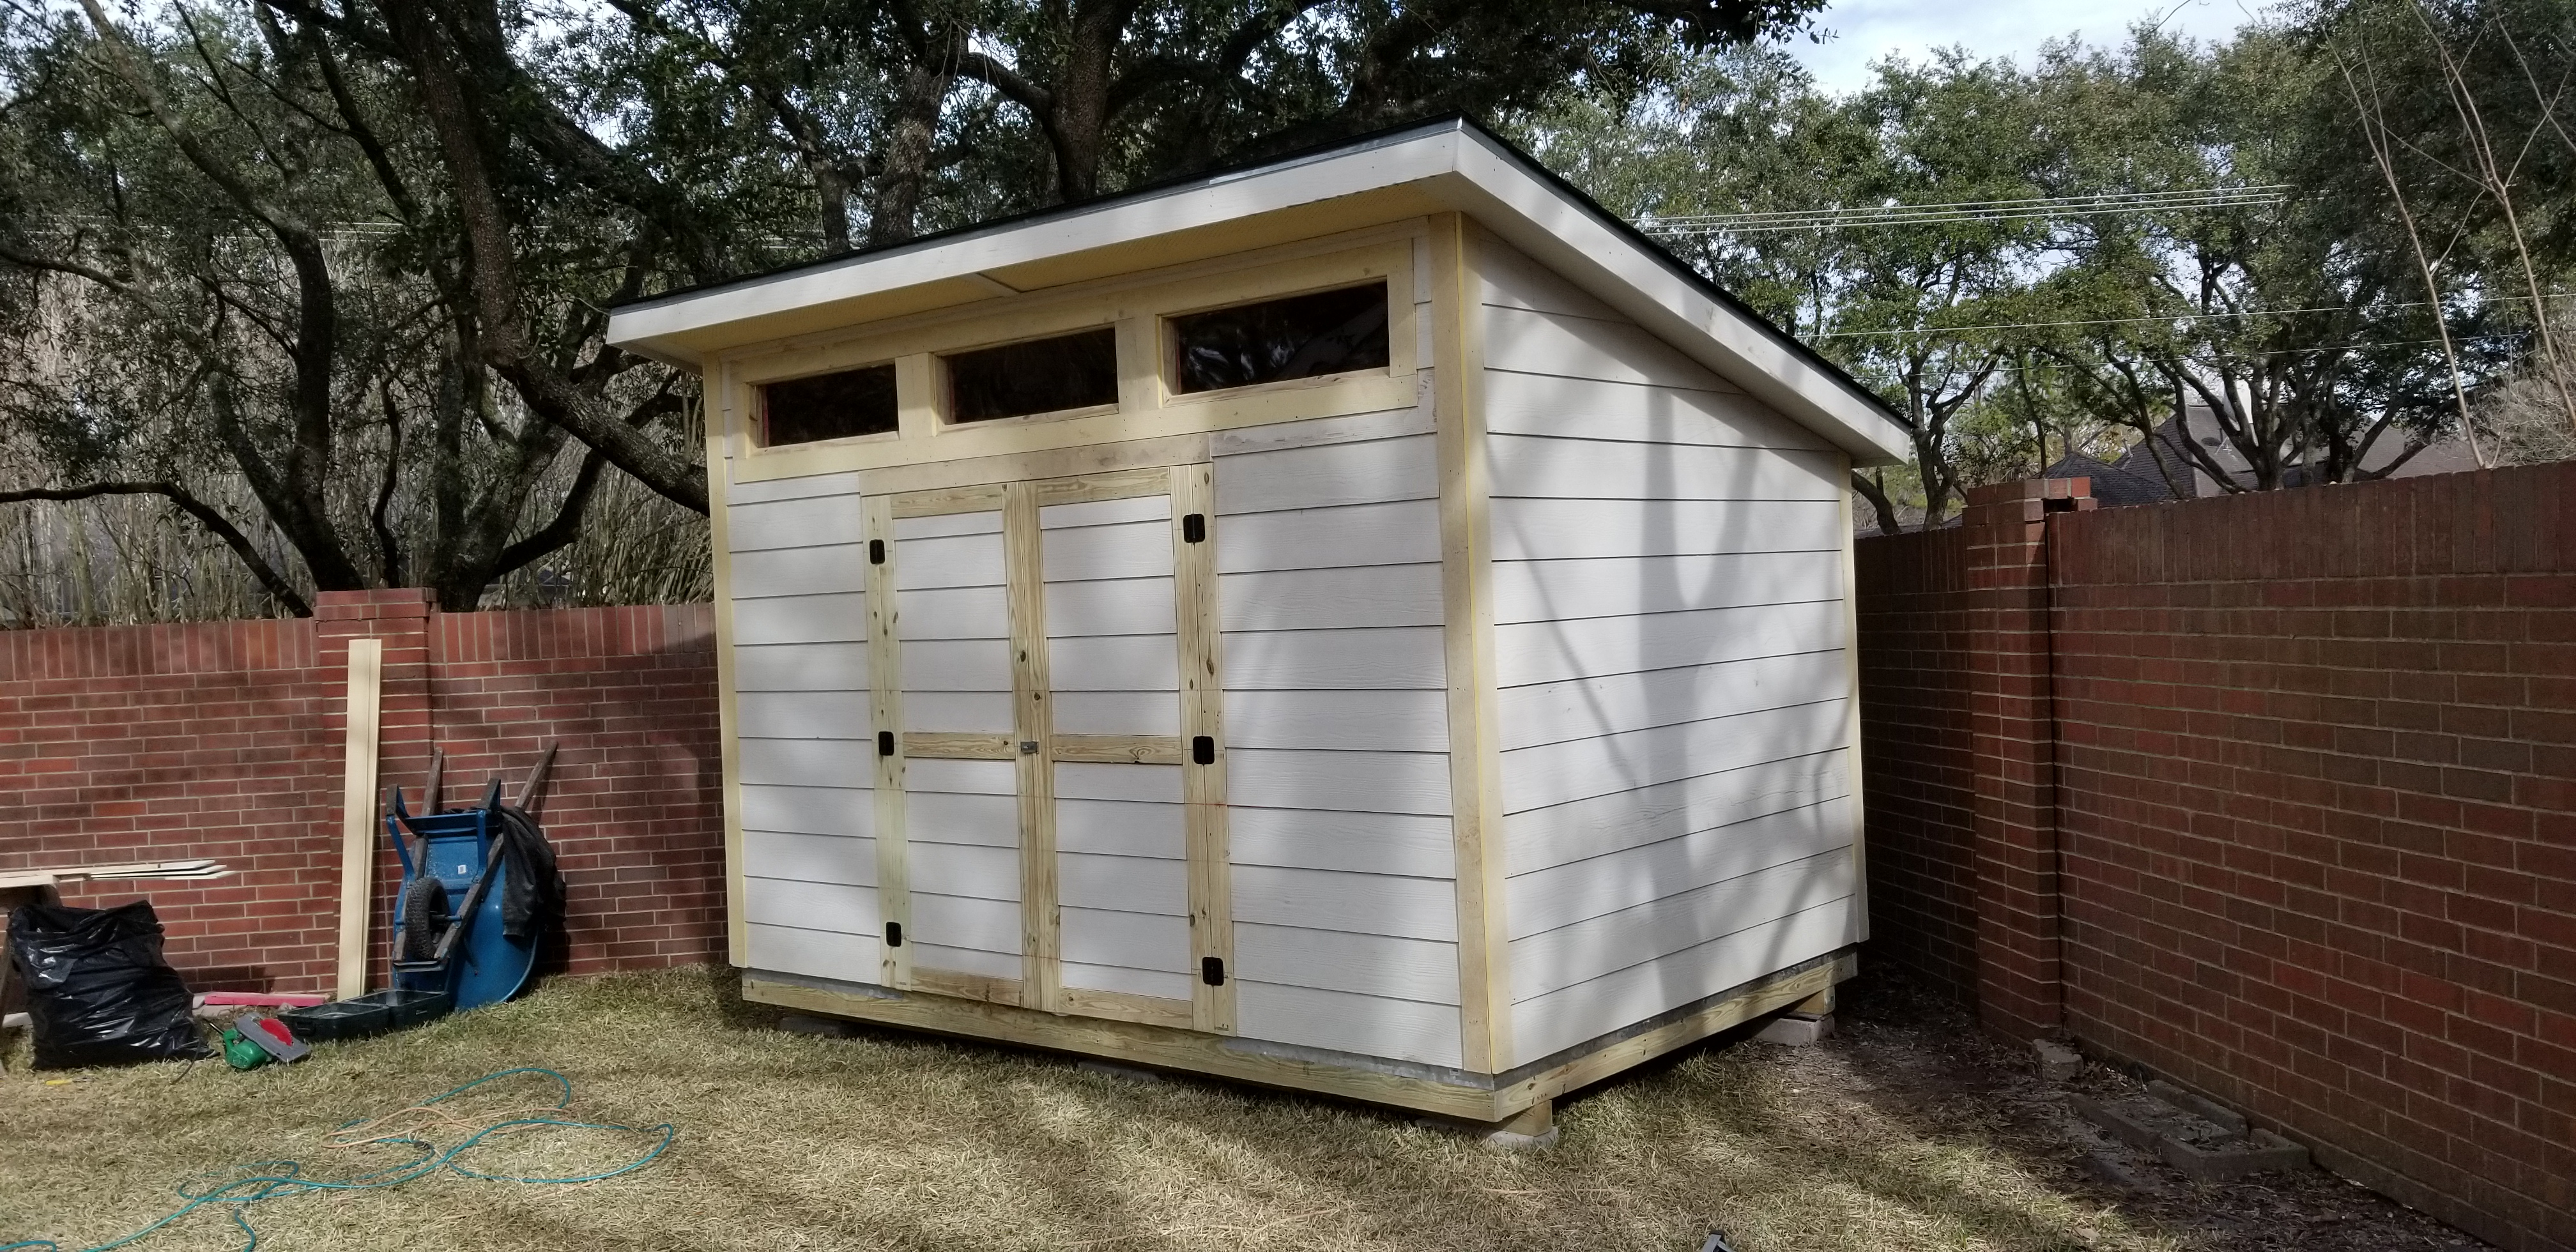 ft cabinet pin side shed with infinity storage less keter sheds for x